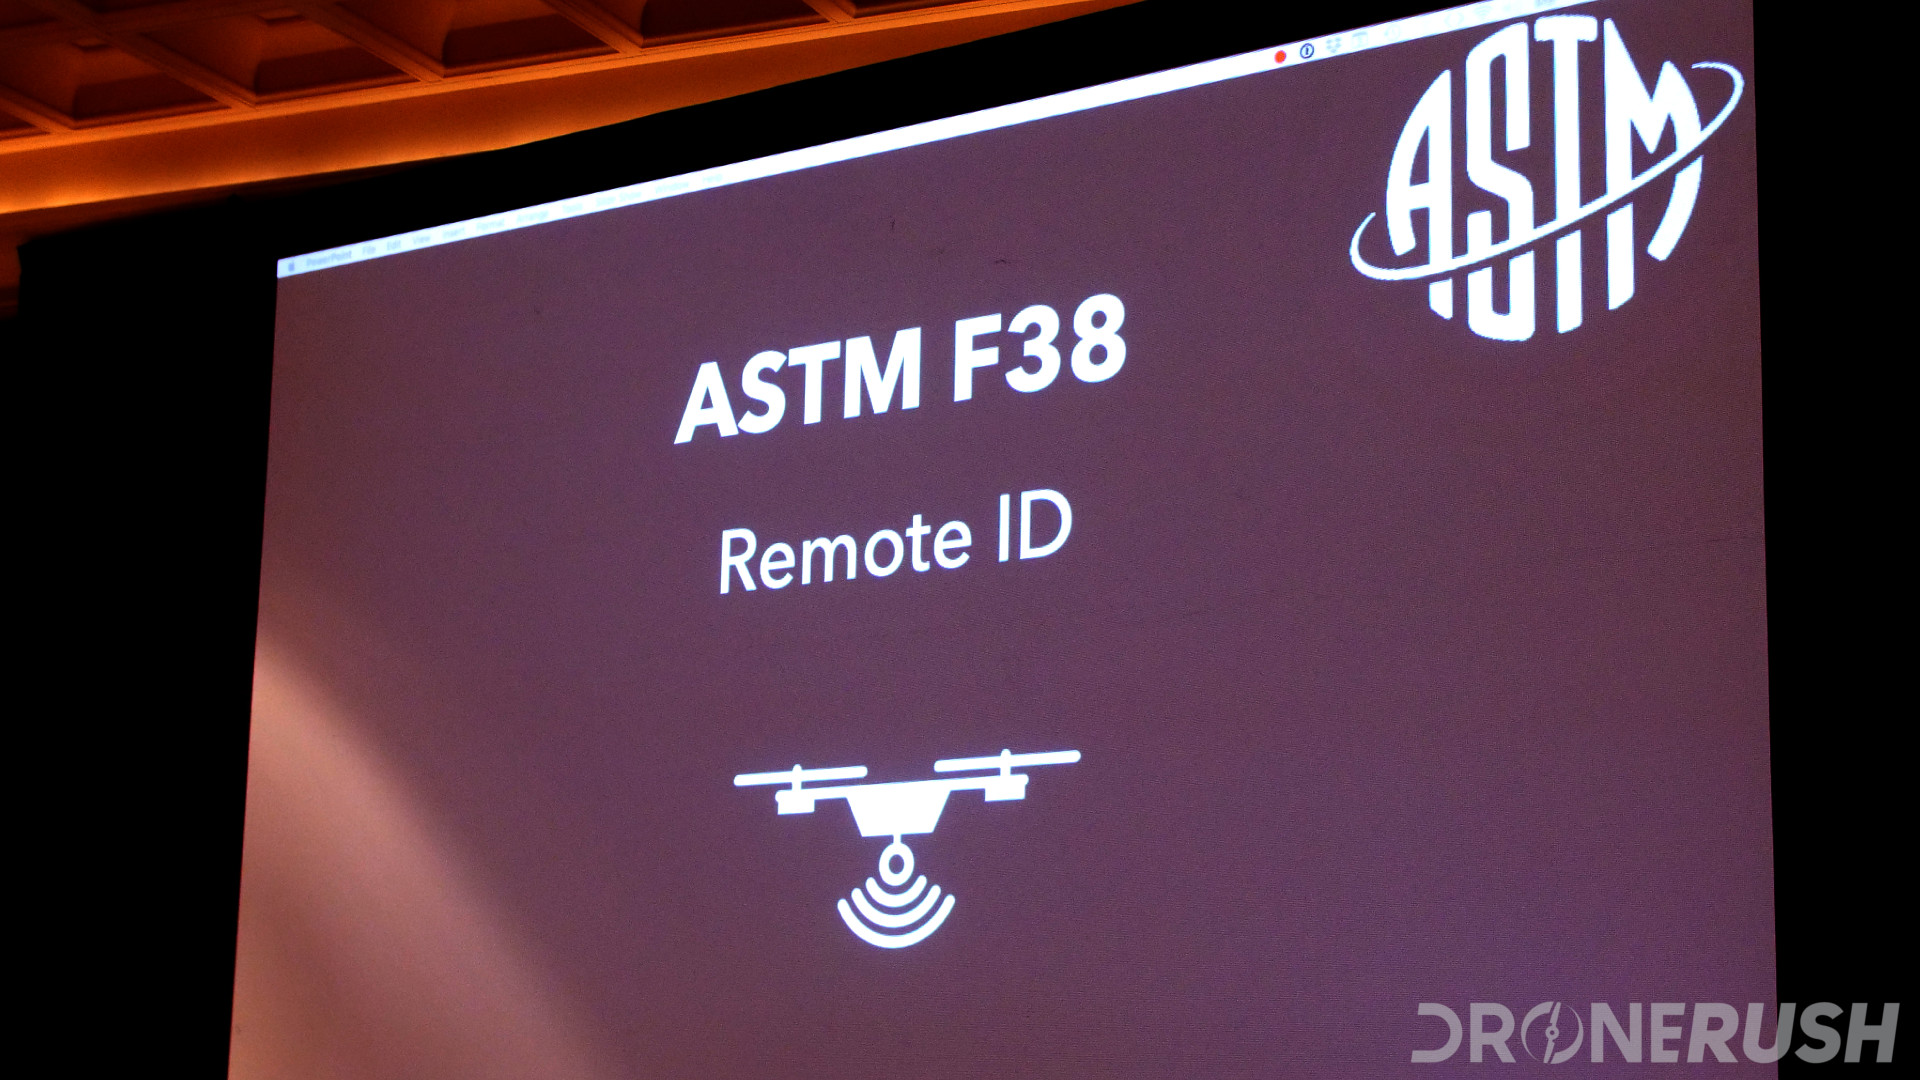 Interdrone 2019 ASTM F38 remote ID